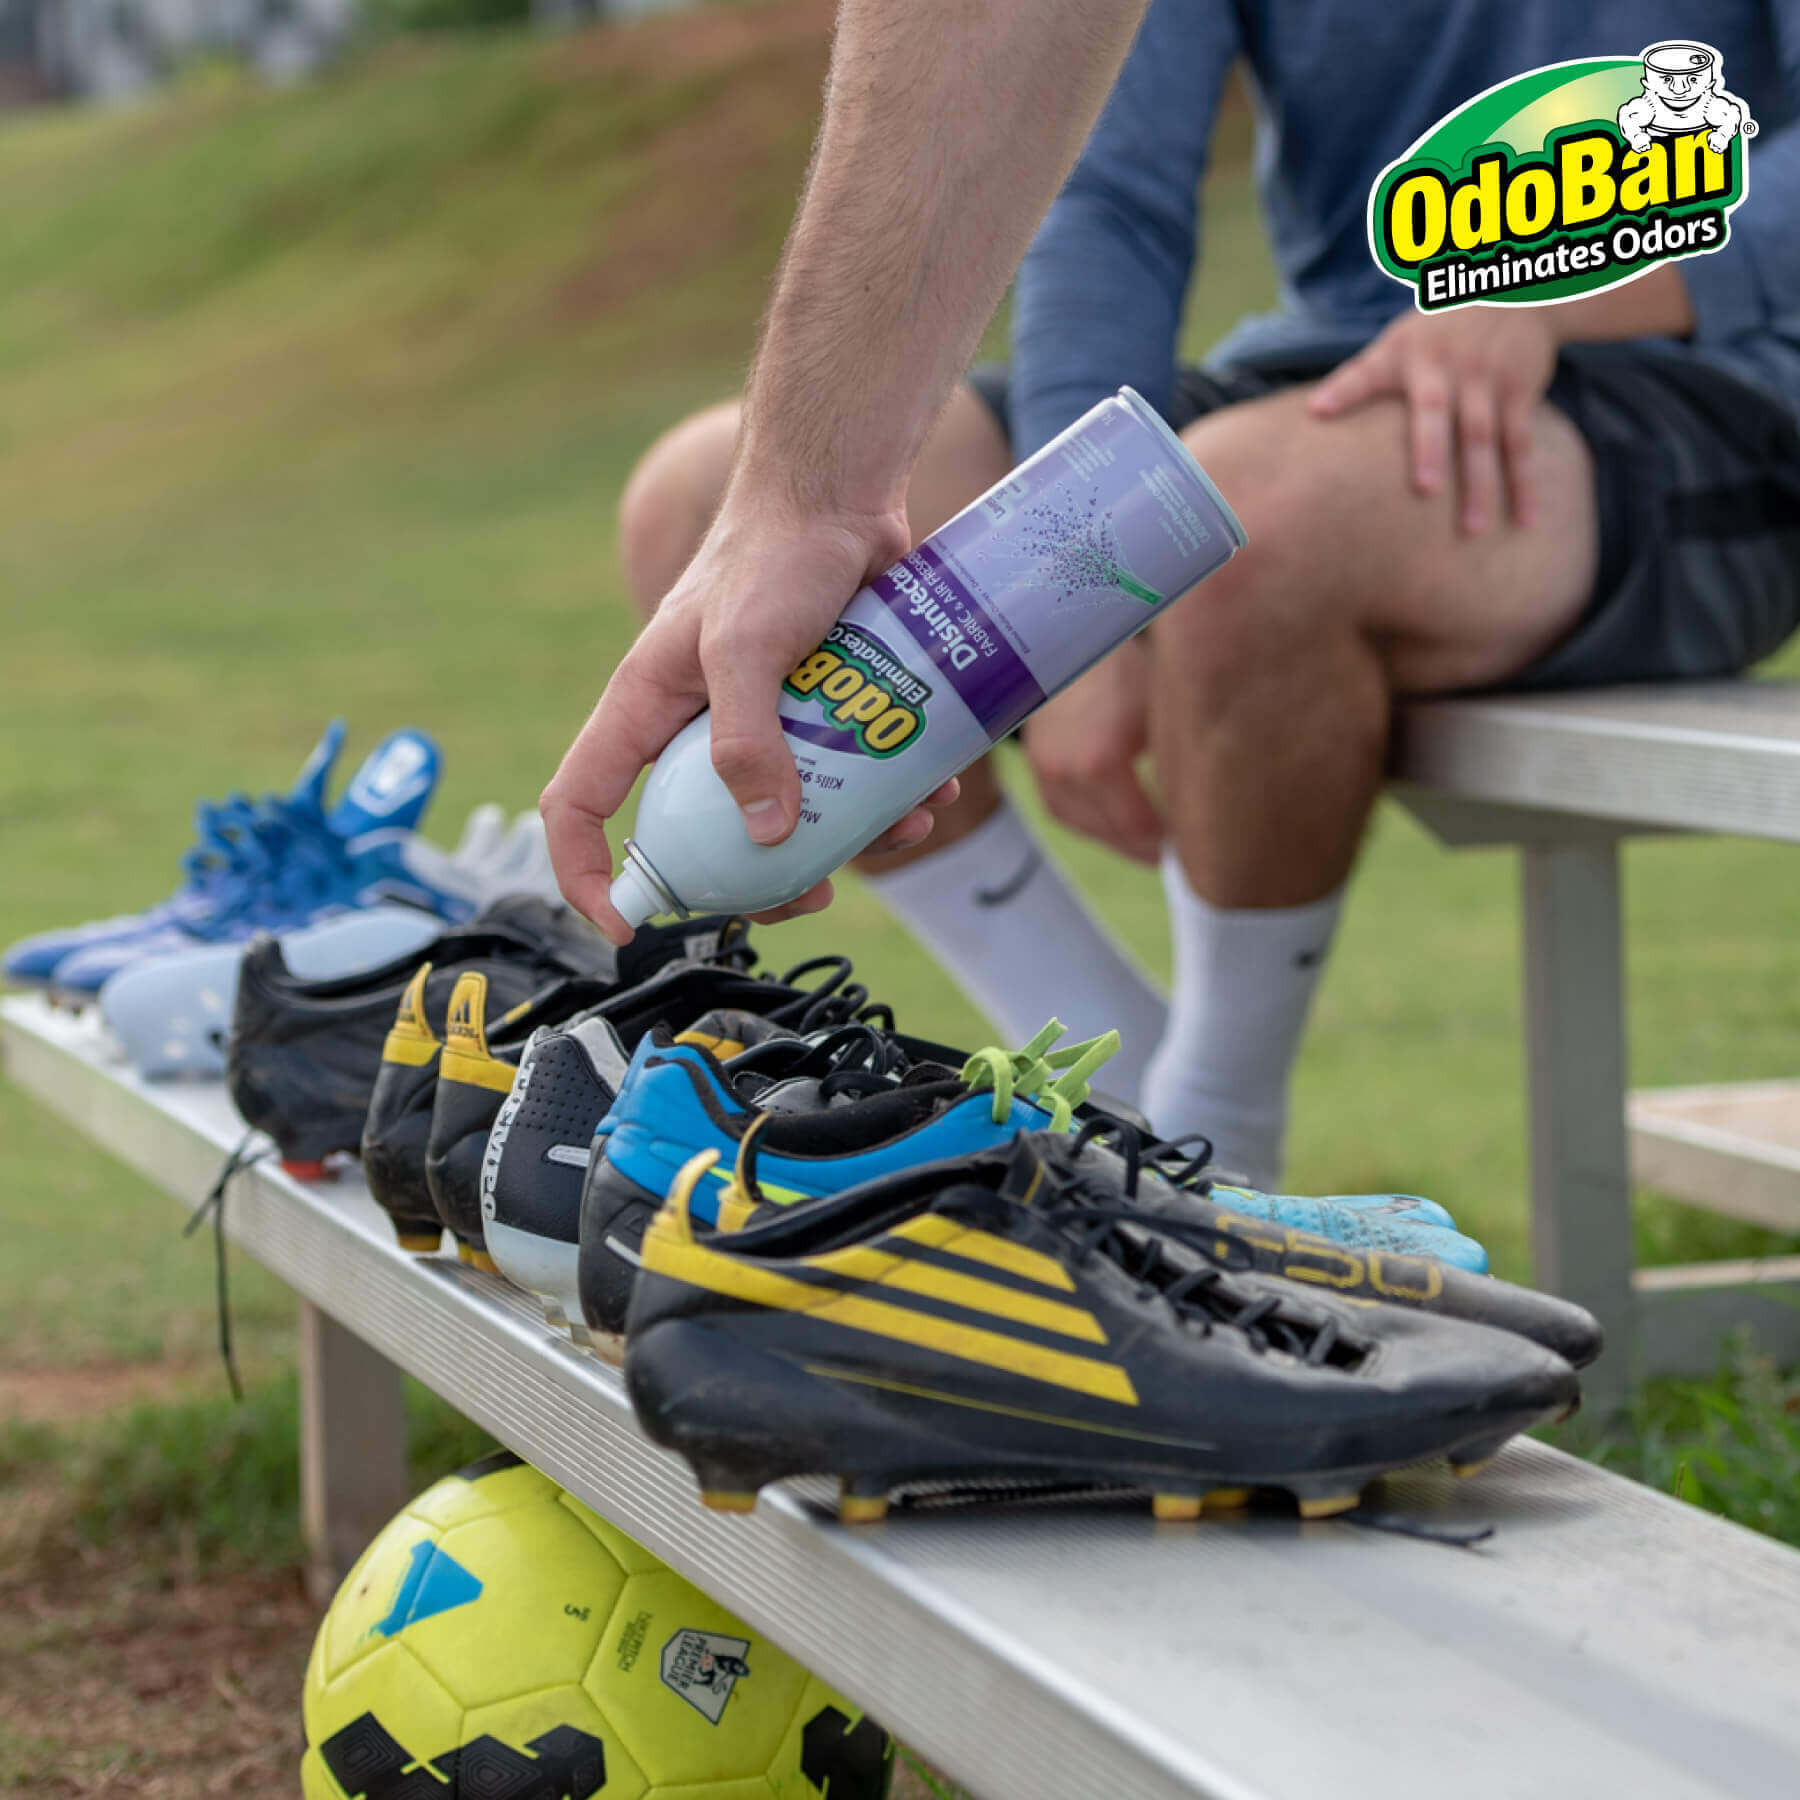 Man spraying OdoBan in smelly Soccer cleats.